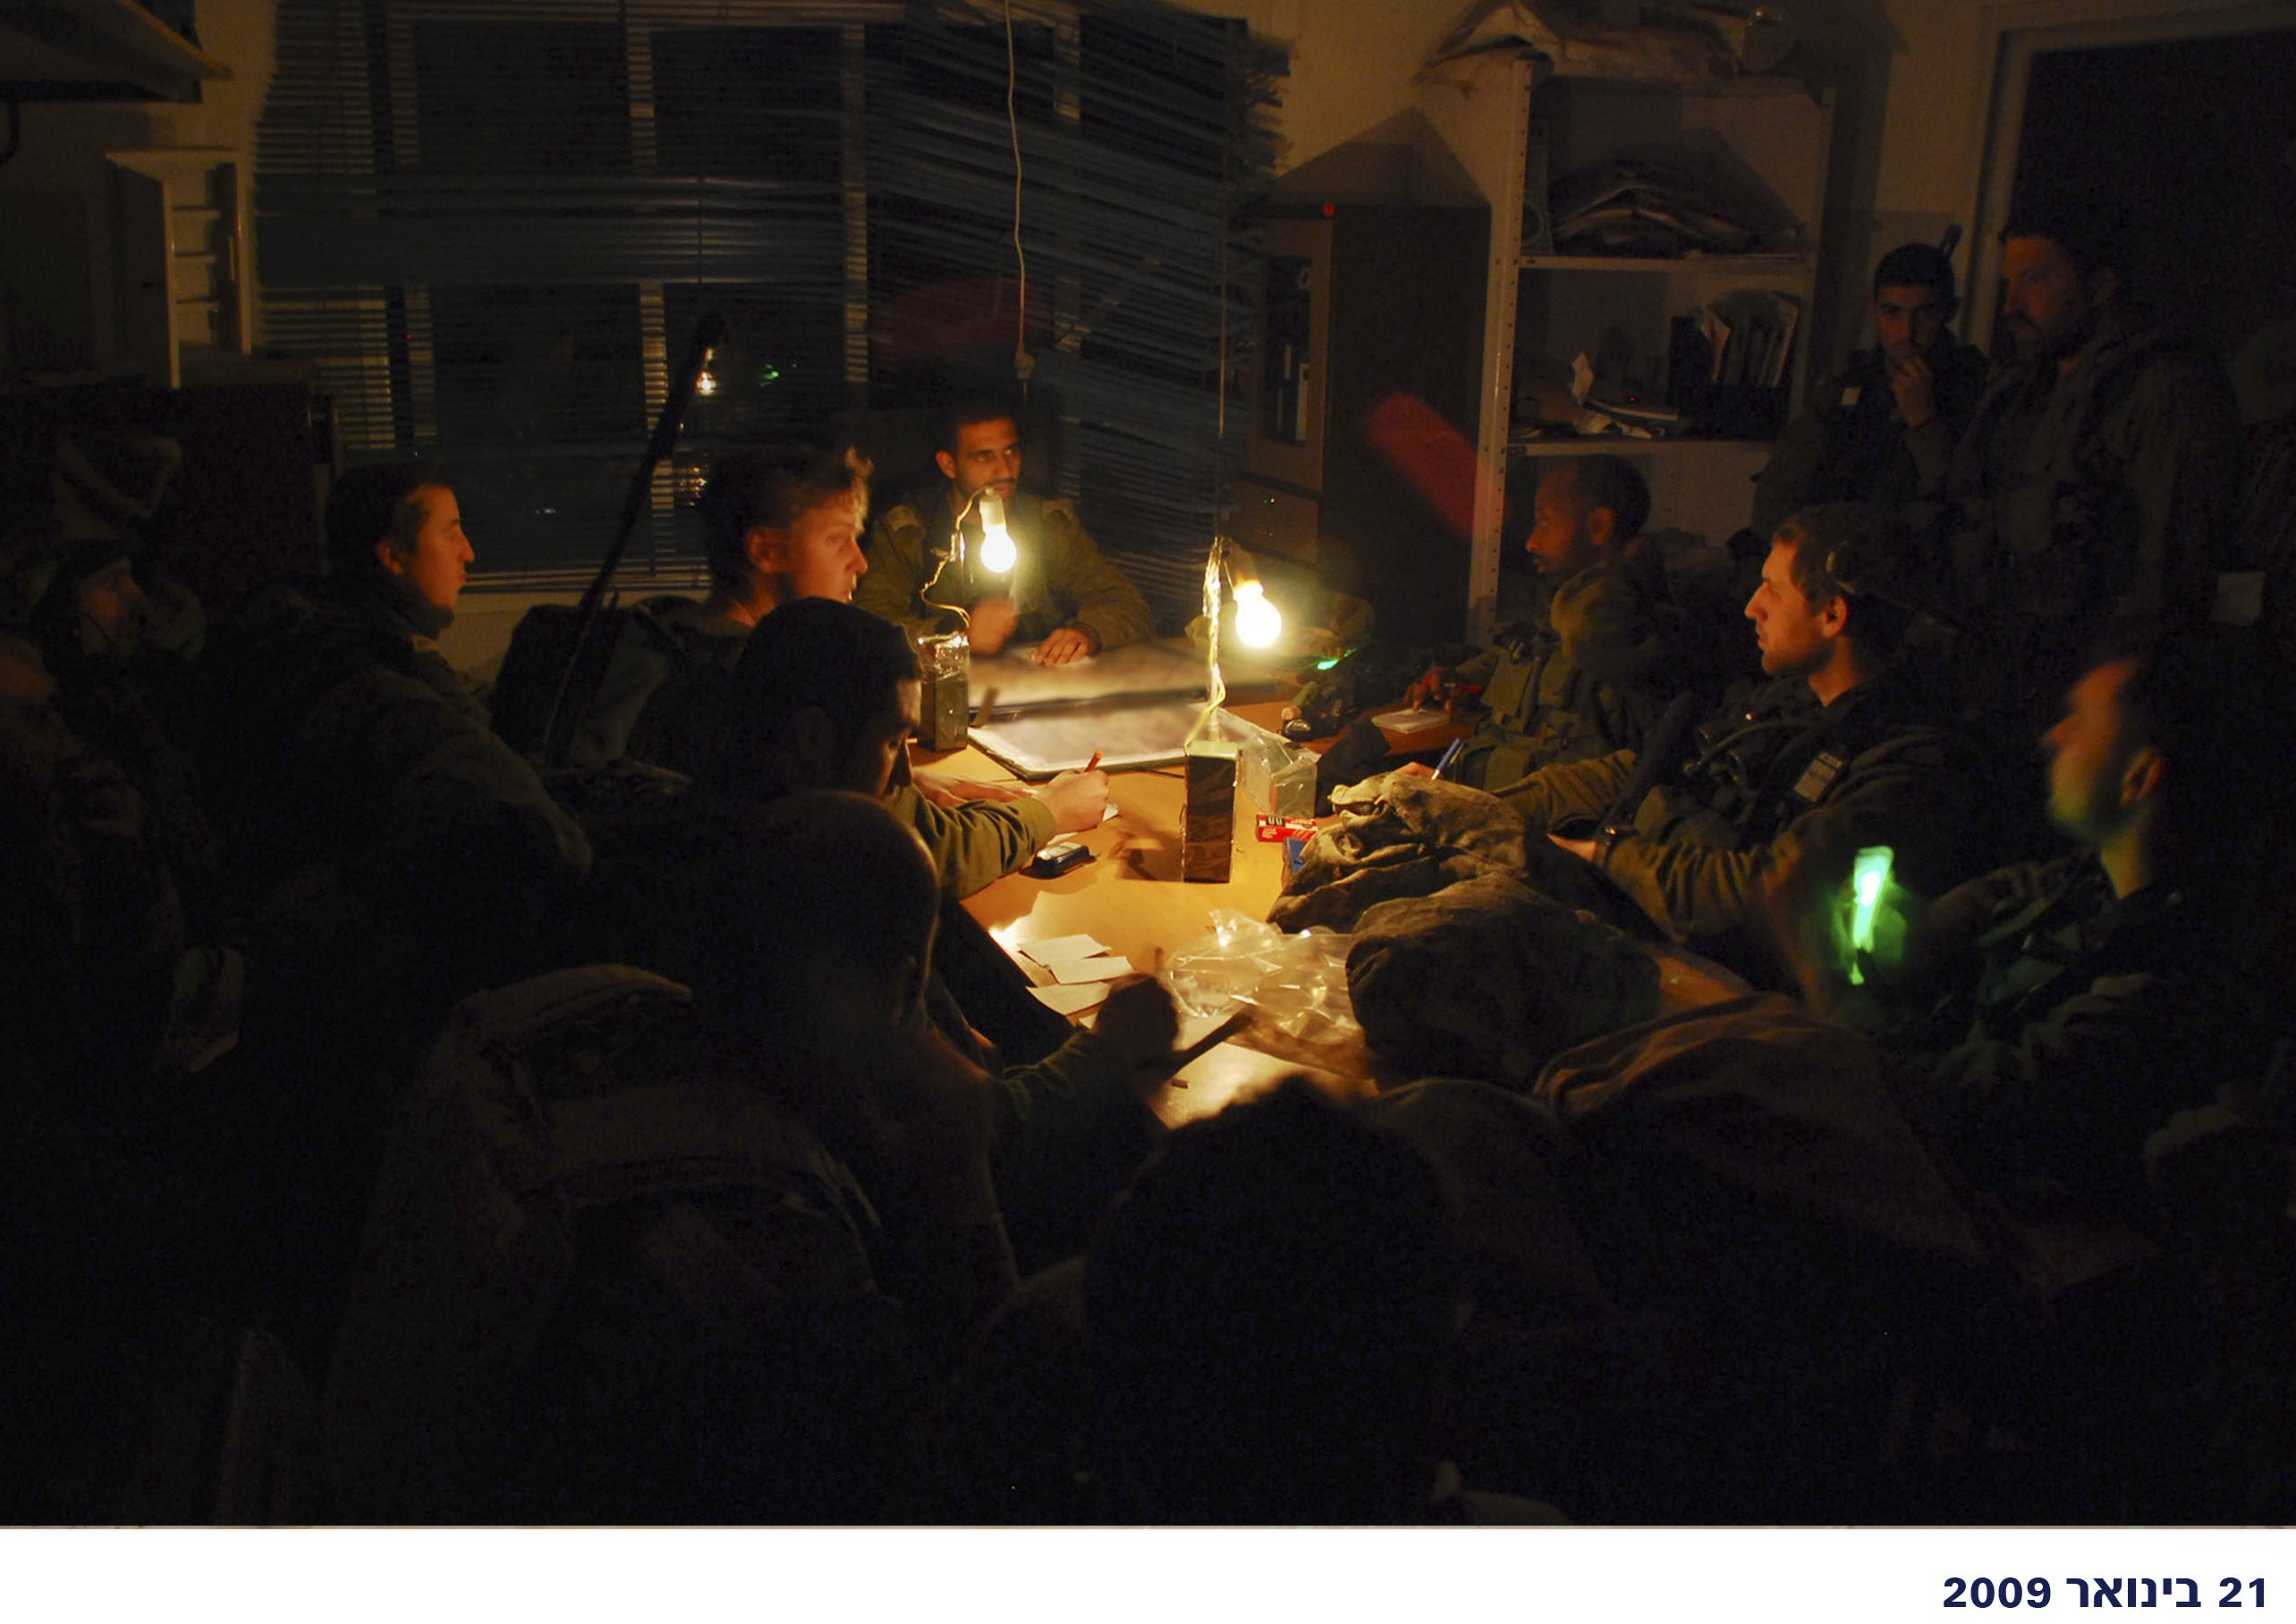 Pictures taken by the IDF during Operation Cast Lead.